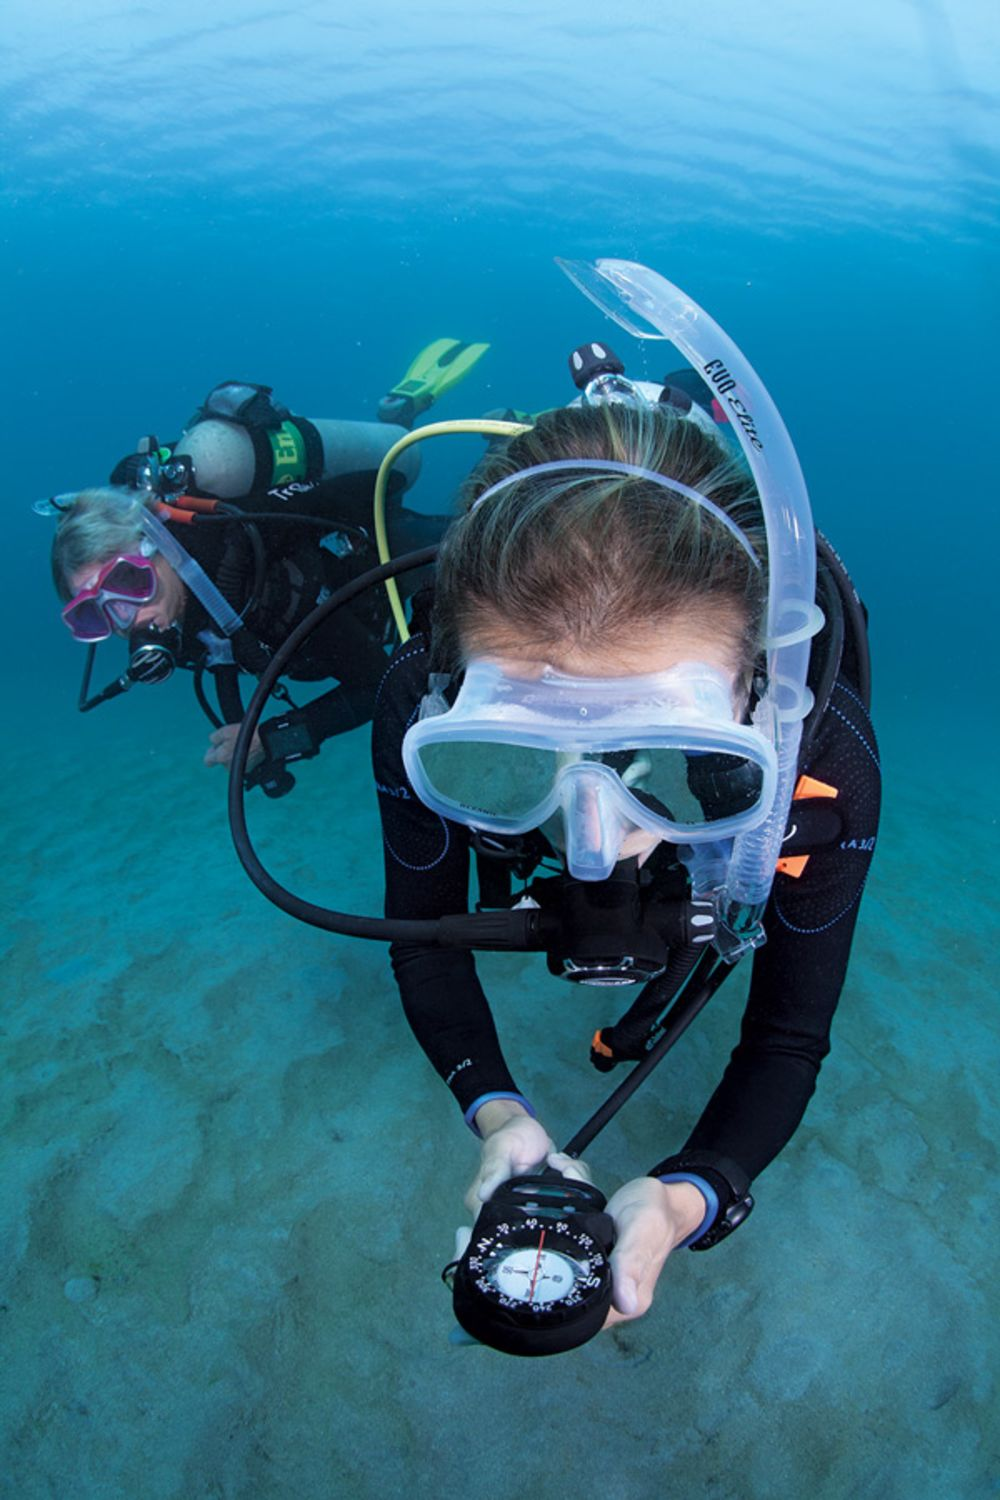 Coolest PADI Scuba Diving Specialties Sport Diver - 10 best places to learn to dive the padi way